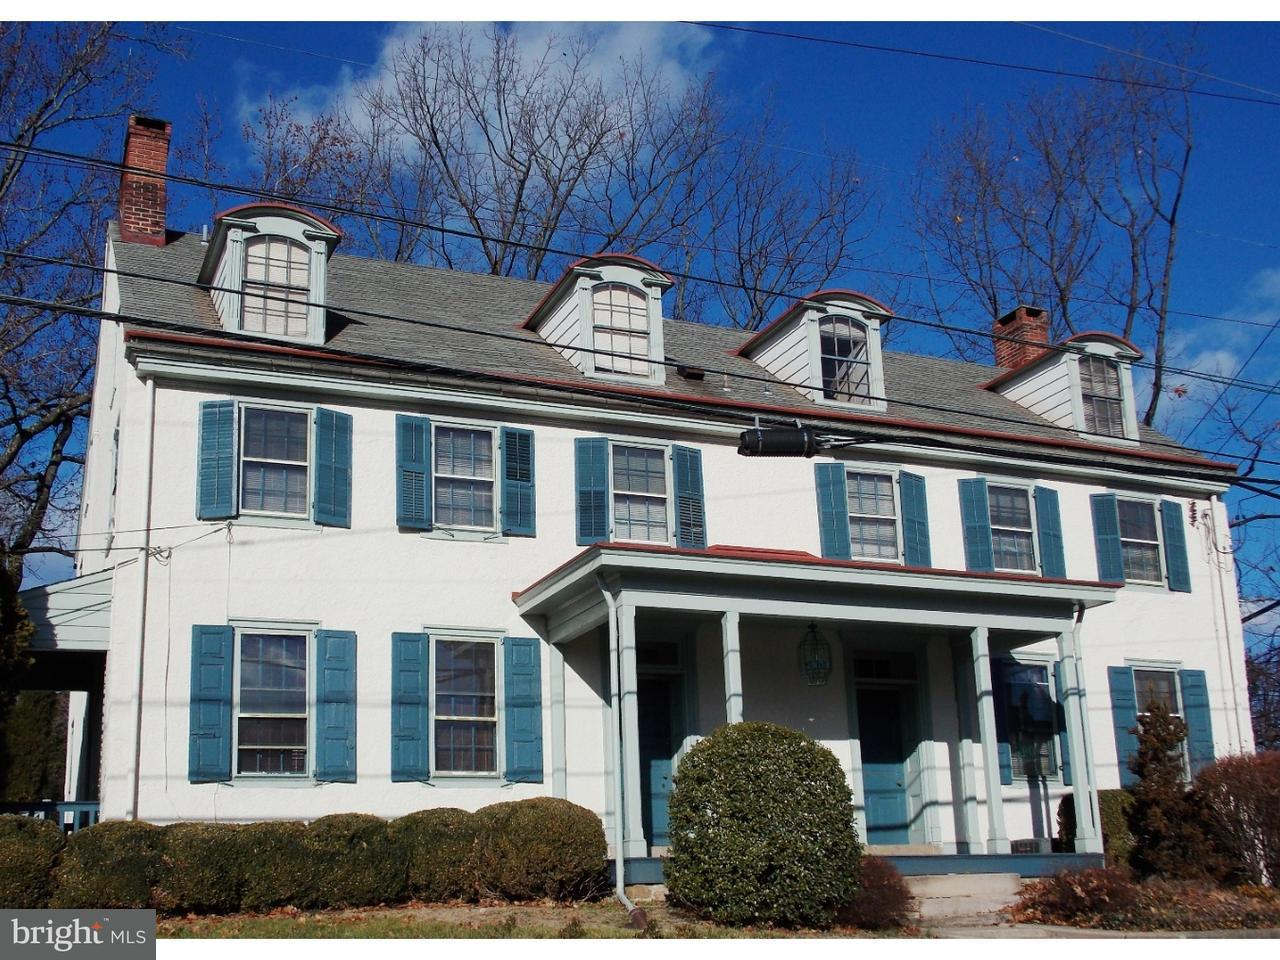 Single Family Home for Rent at 4692 YORK Road Doylestown, Pennsylvania 18902 United States